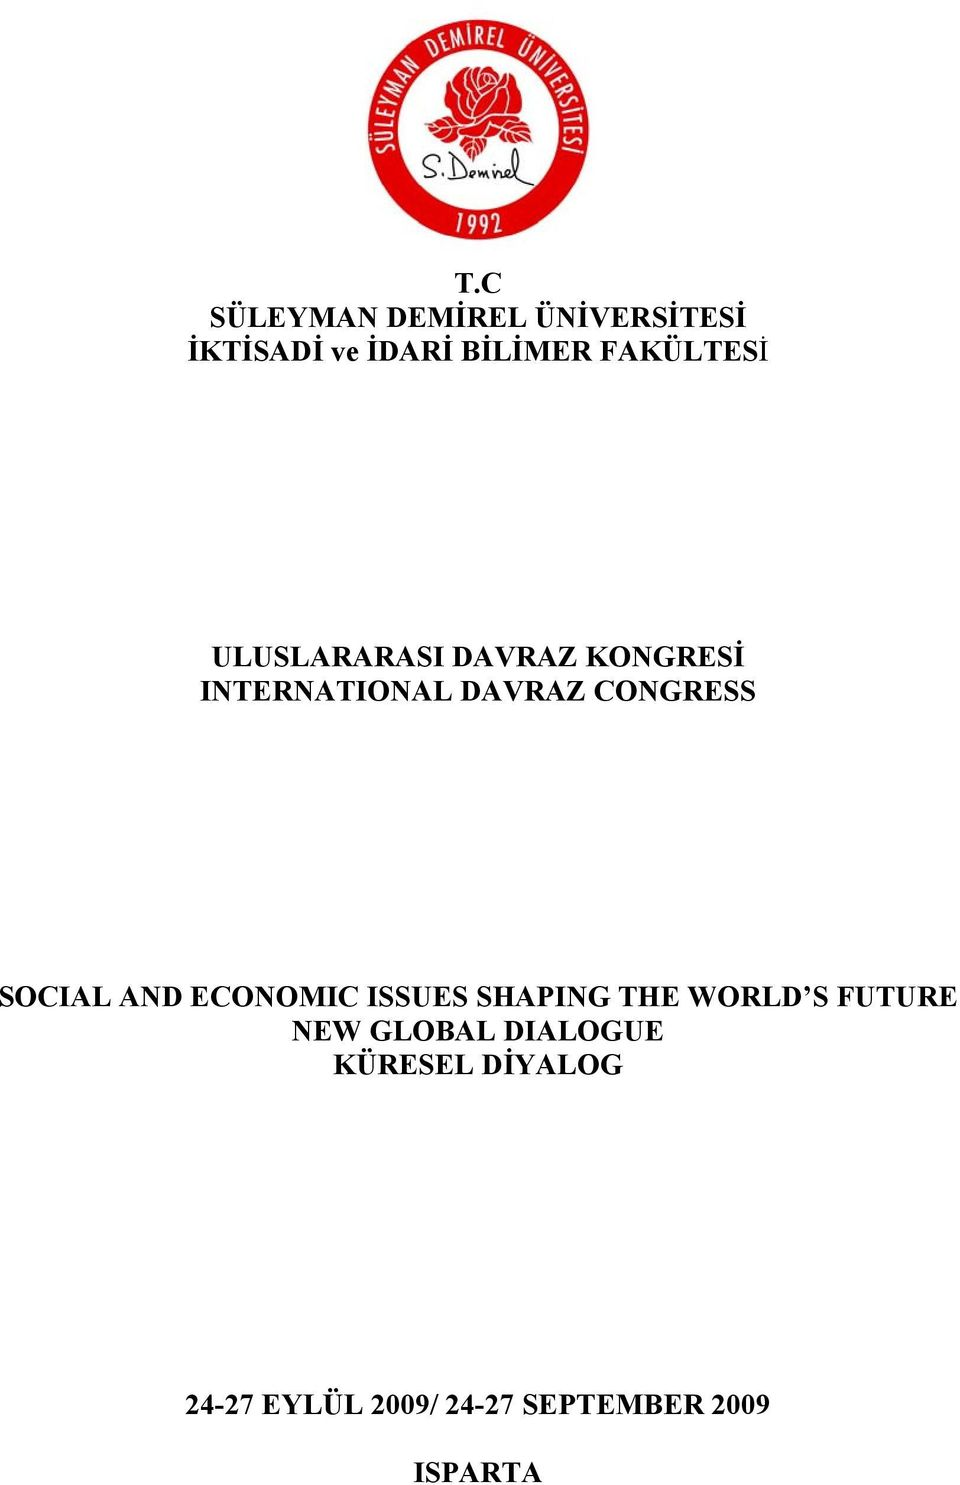 CONGRESS SOCIAL AND ECONOMIC ISSUES SHAPING THE WORLD S FUTURE NEW